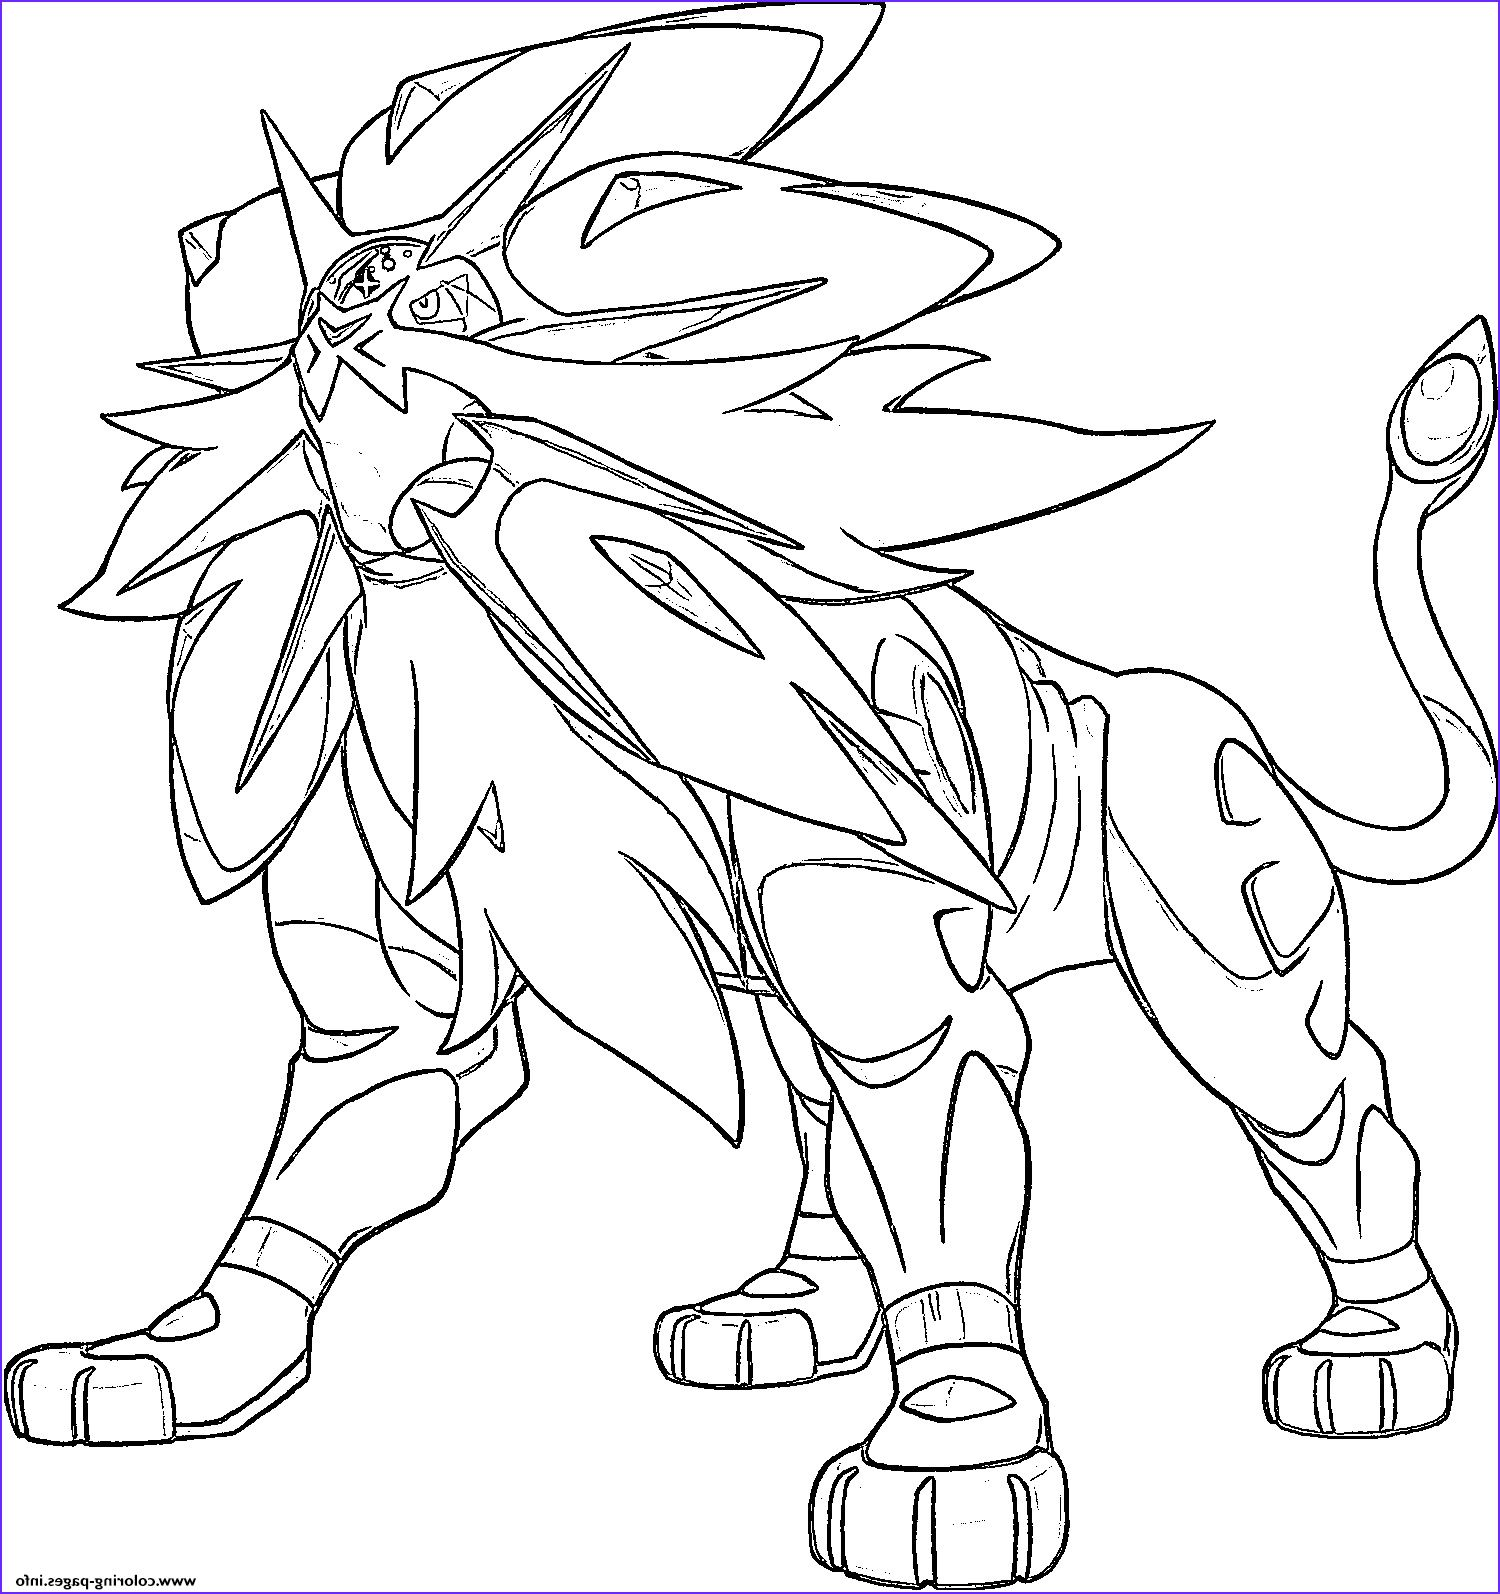 Pin By J Hendershot On Coloring Pages Pokemon Coloring Pages Pokemon Coloring Coloring Pages